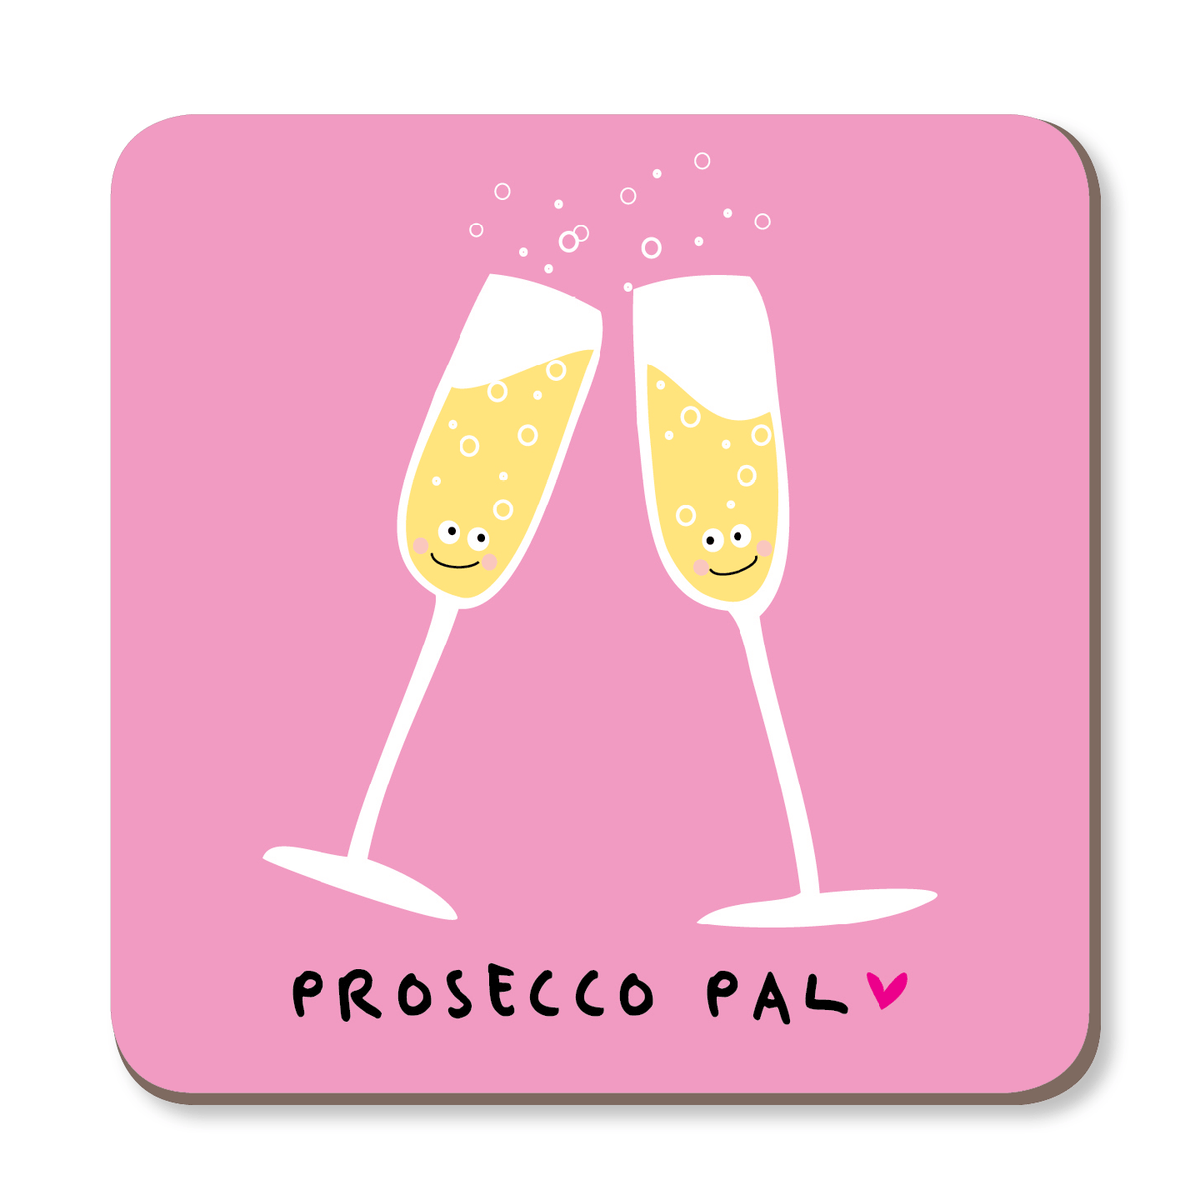 Prosecco Pal Boozy Coaster by Ooh I Like That - Whale and Bird